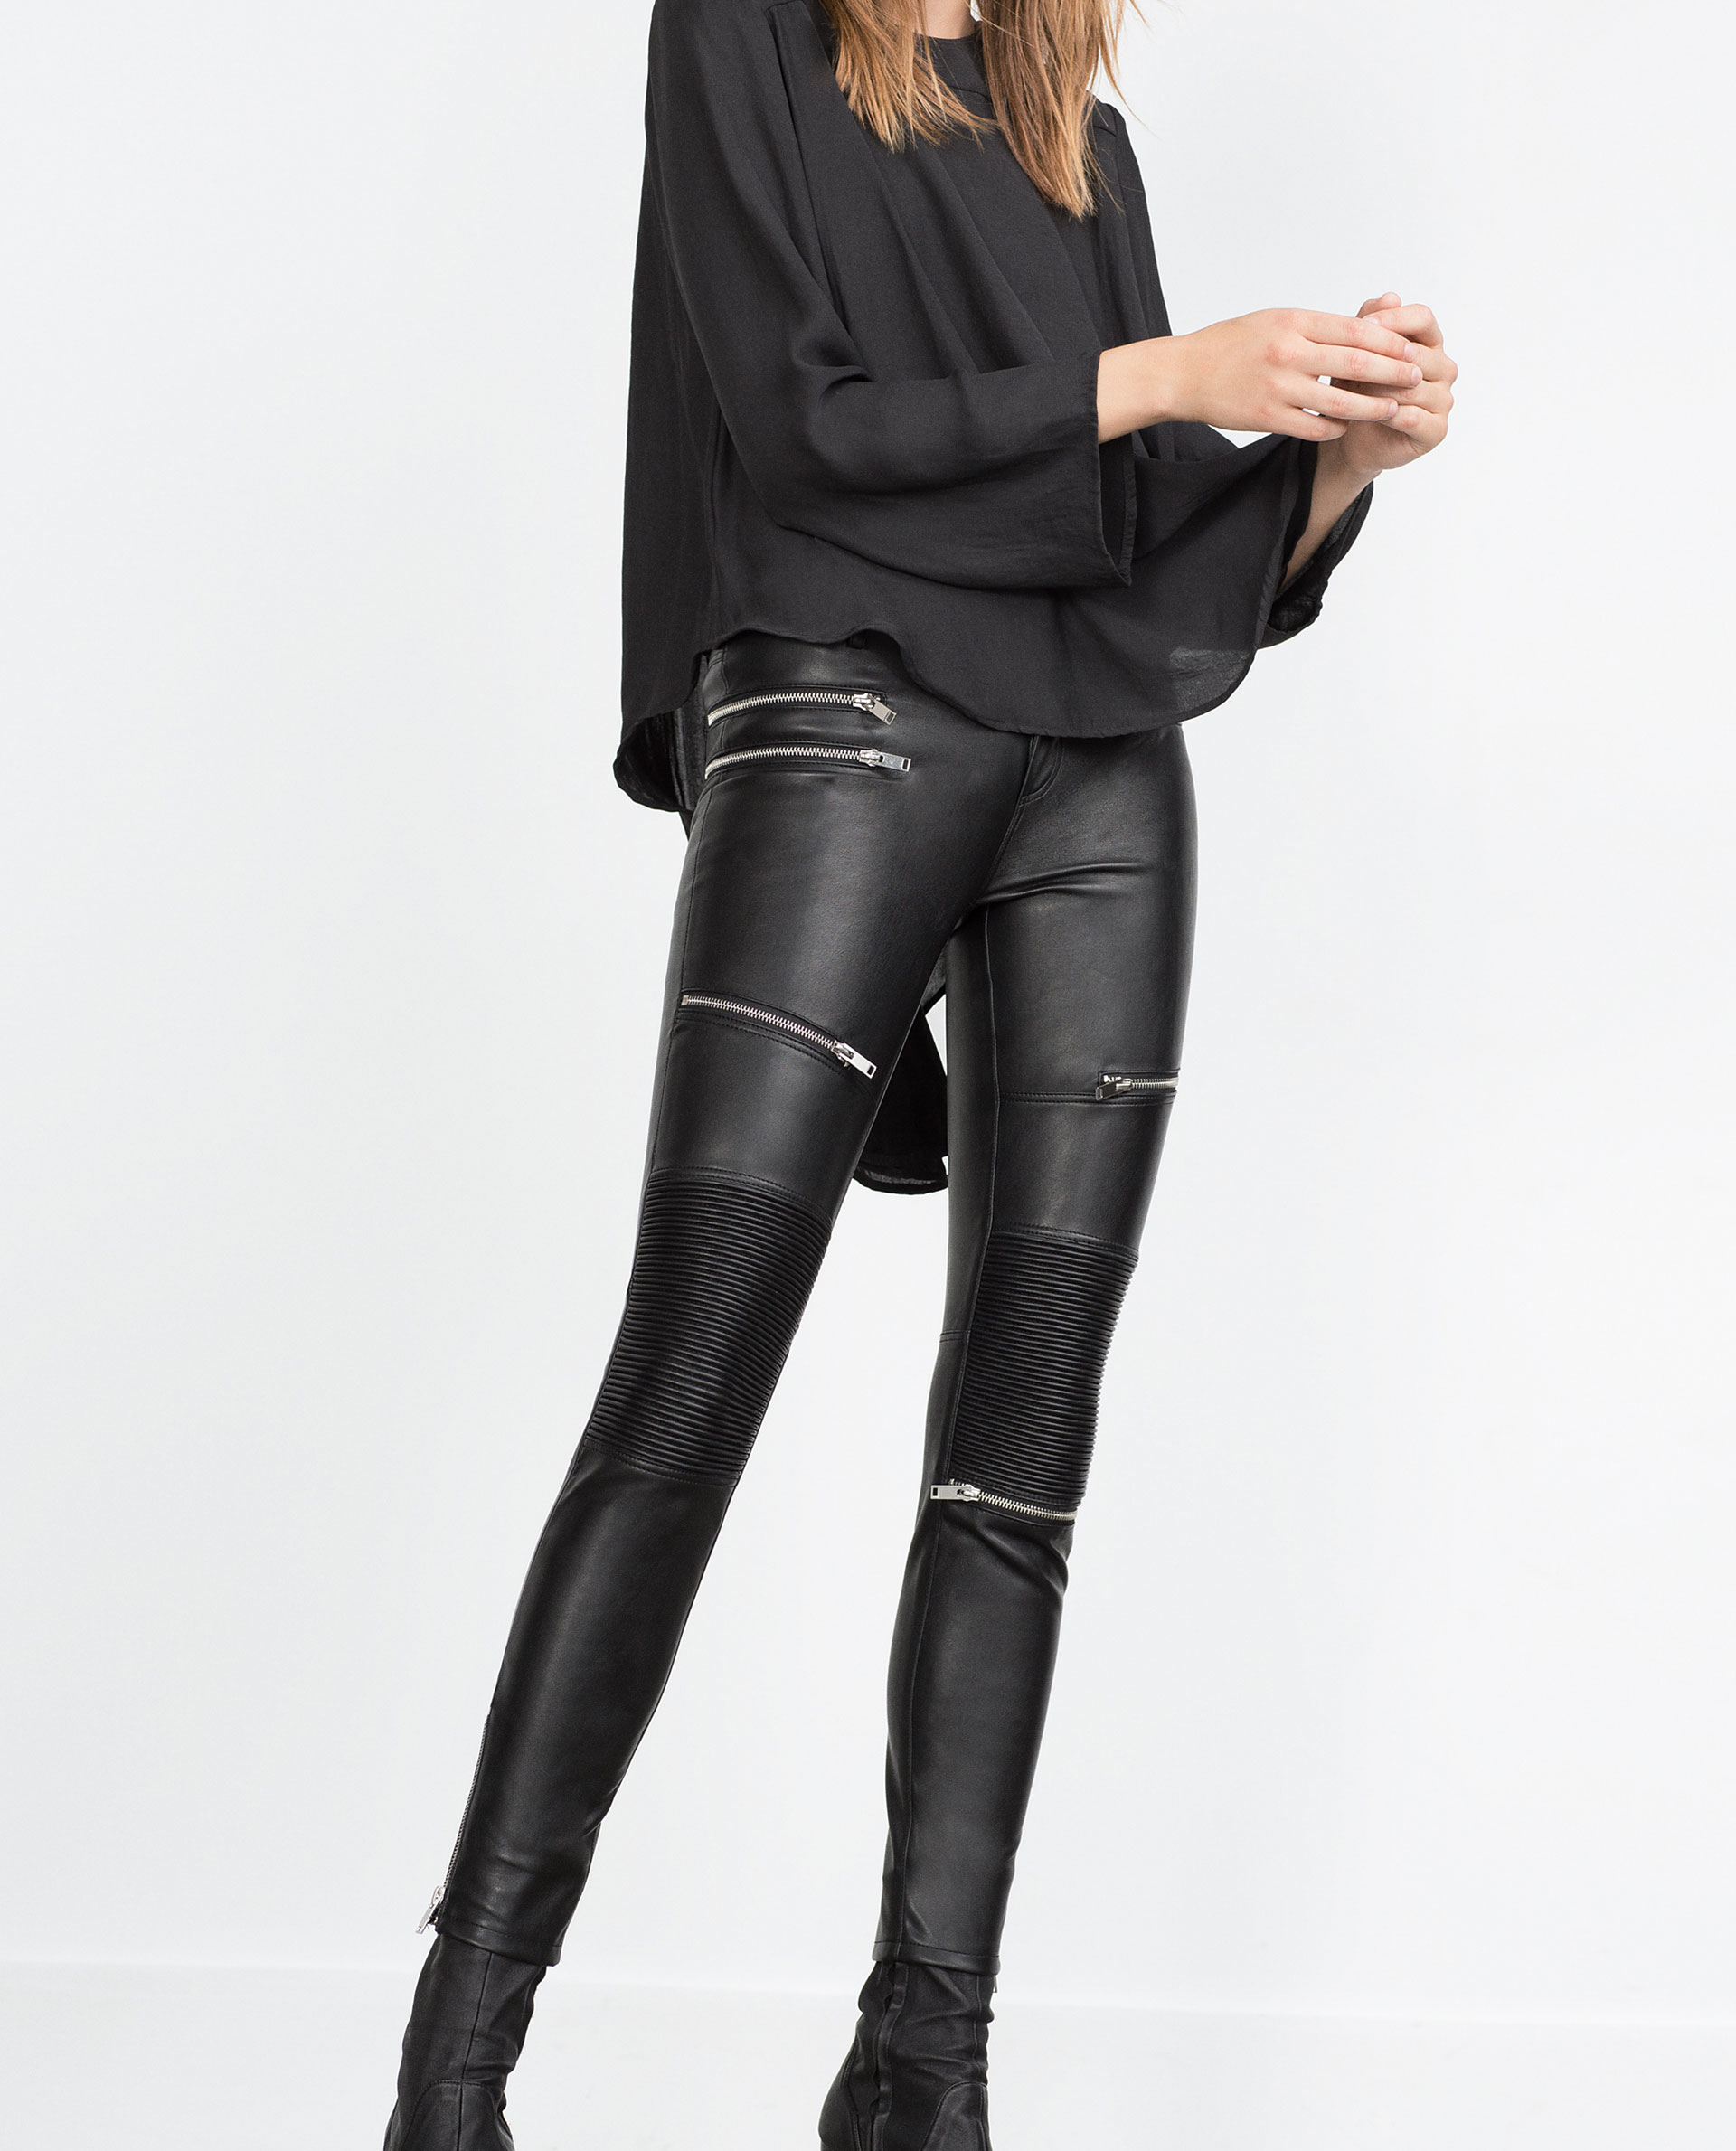 Style to classic leather pant look style - the Biker. Pull on closure Women's Shop Best Sellers · Deals of the Day · Fast Shipping · Read Ratings & ReviewsBrands: Crazy, WearAll, Cresay, Bikeraccess, Xtreemgear, Papijam and more.